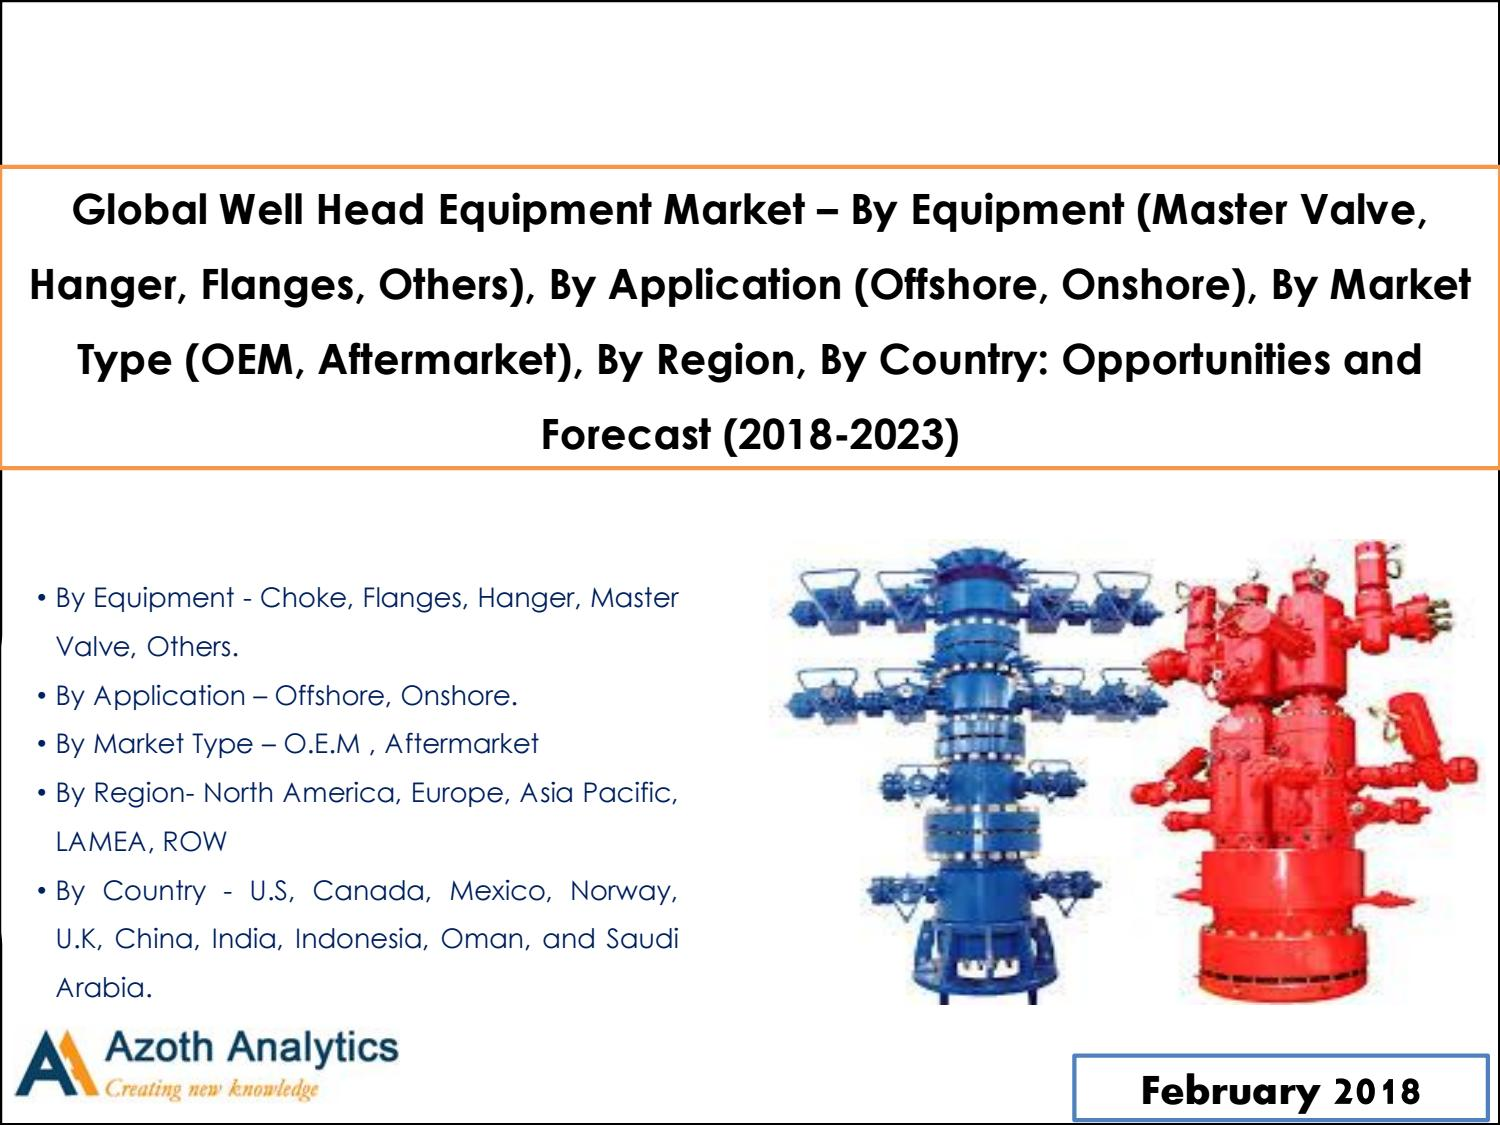 Global Well Head Equipment Market: Opportunities and